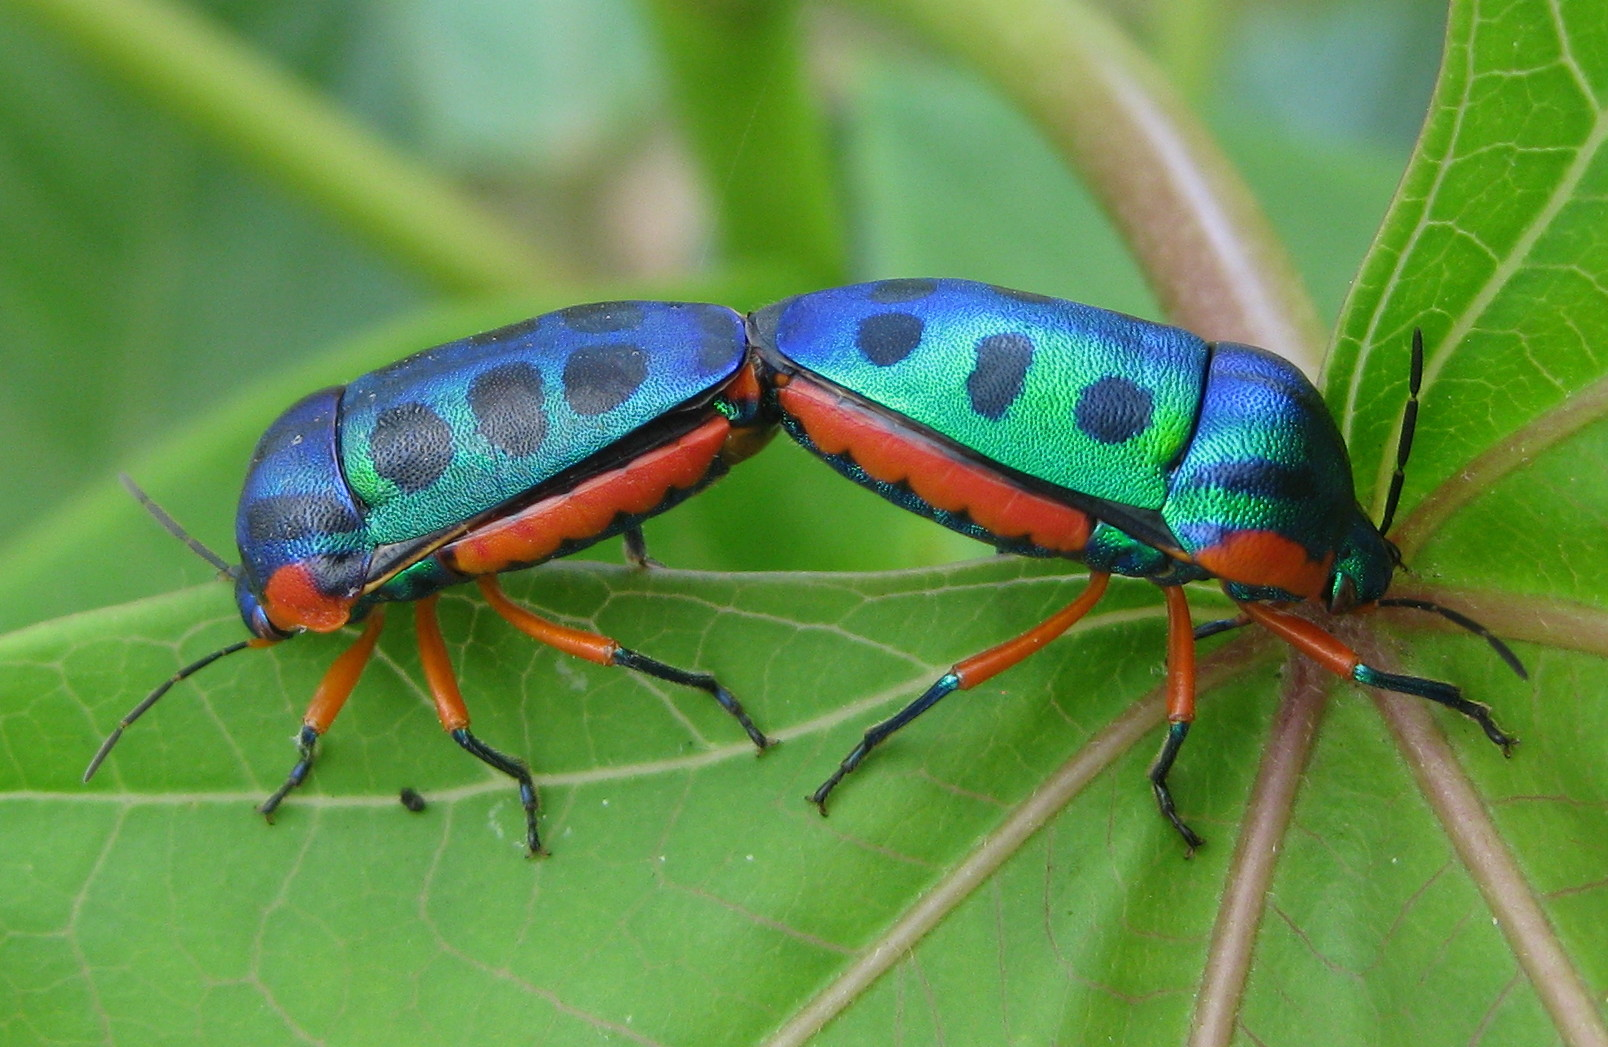 Filerainbow Shield Bugs On Jatropha (5412717309)jpg